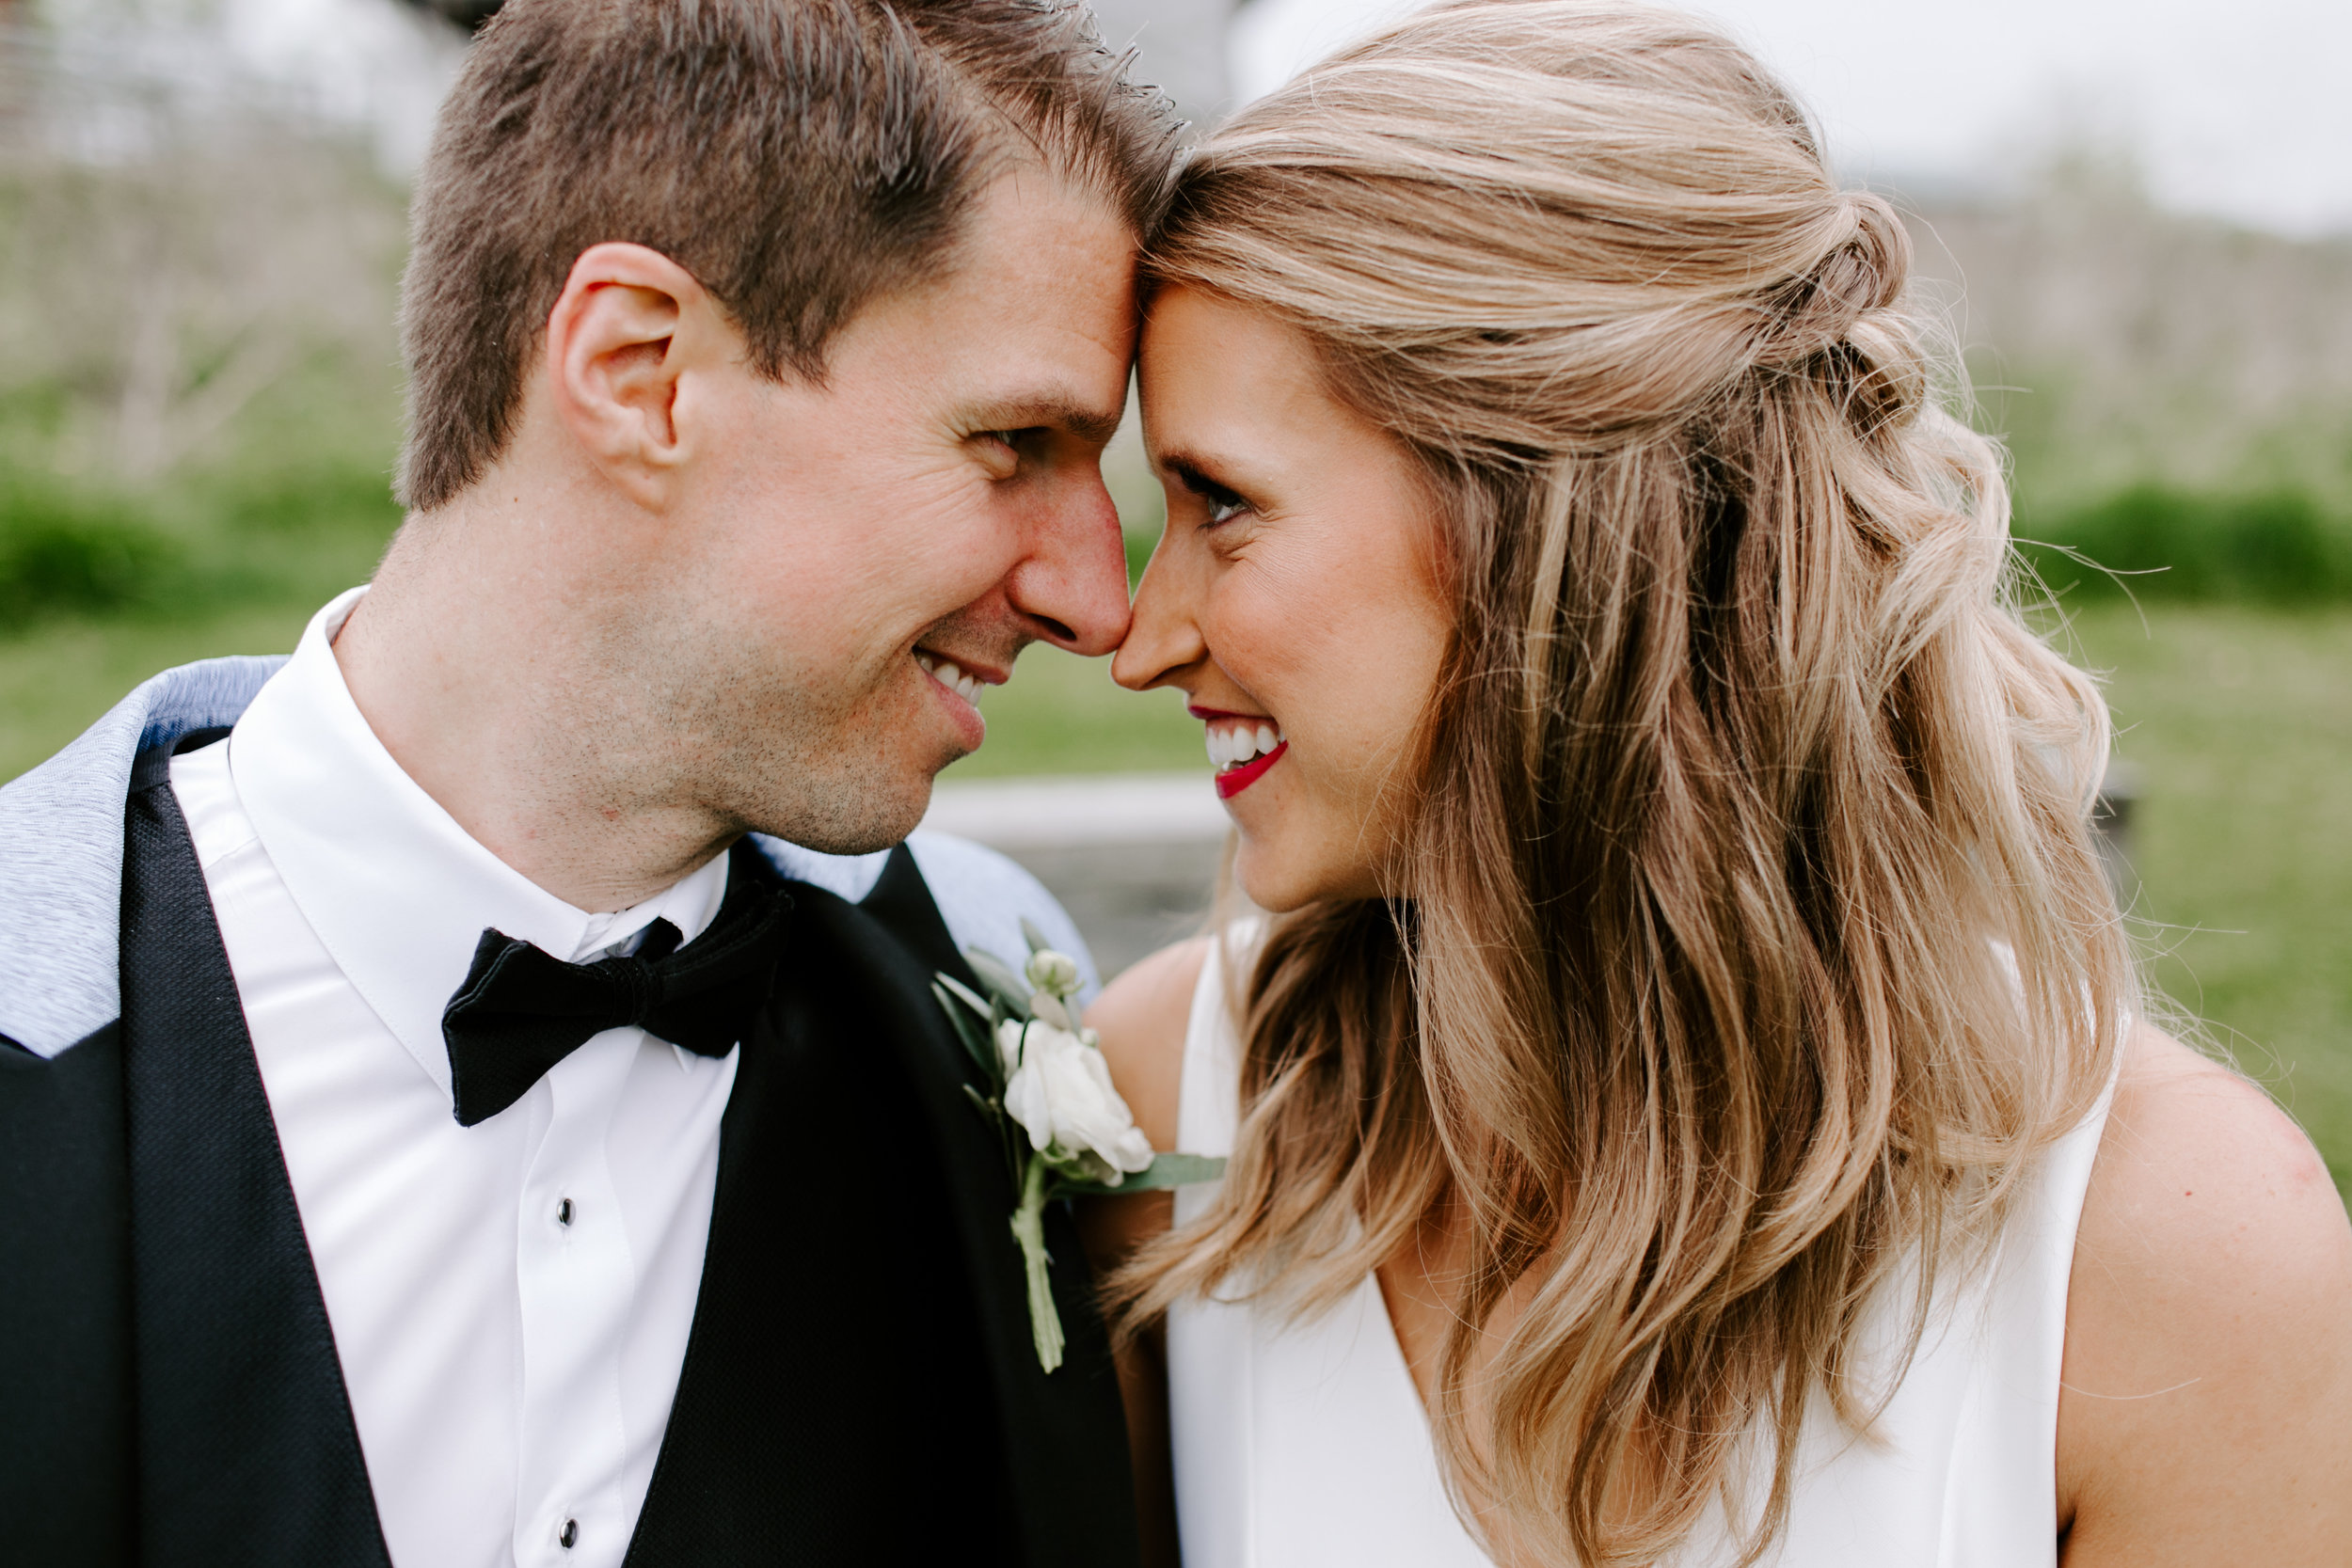 Dena and Nick Traders Point Creamery wedding in zionsville indiana by Emily Wehner-290.jpg